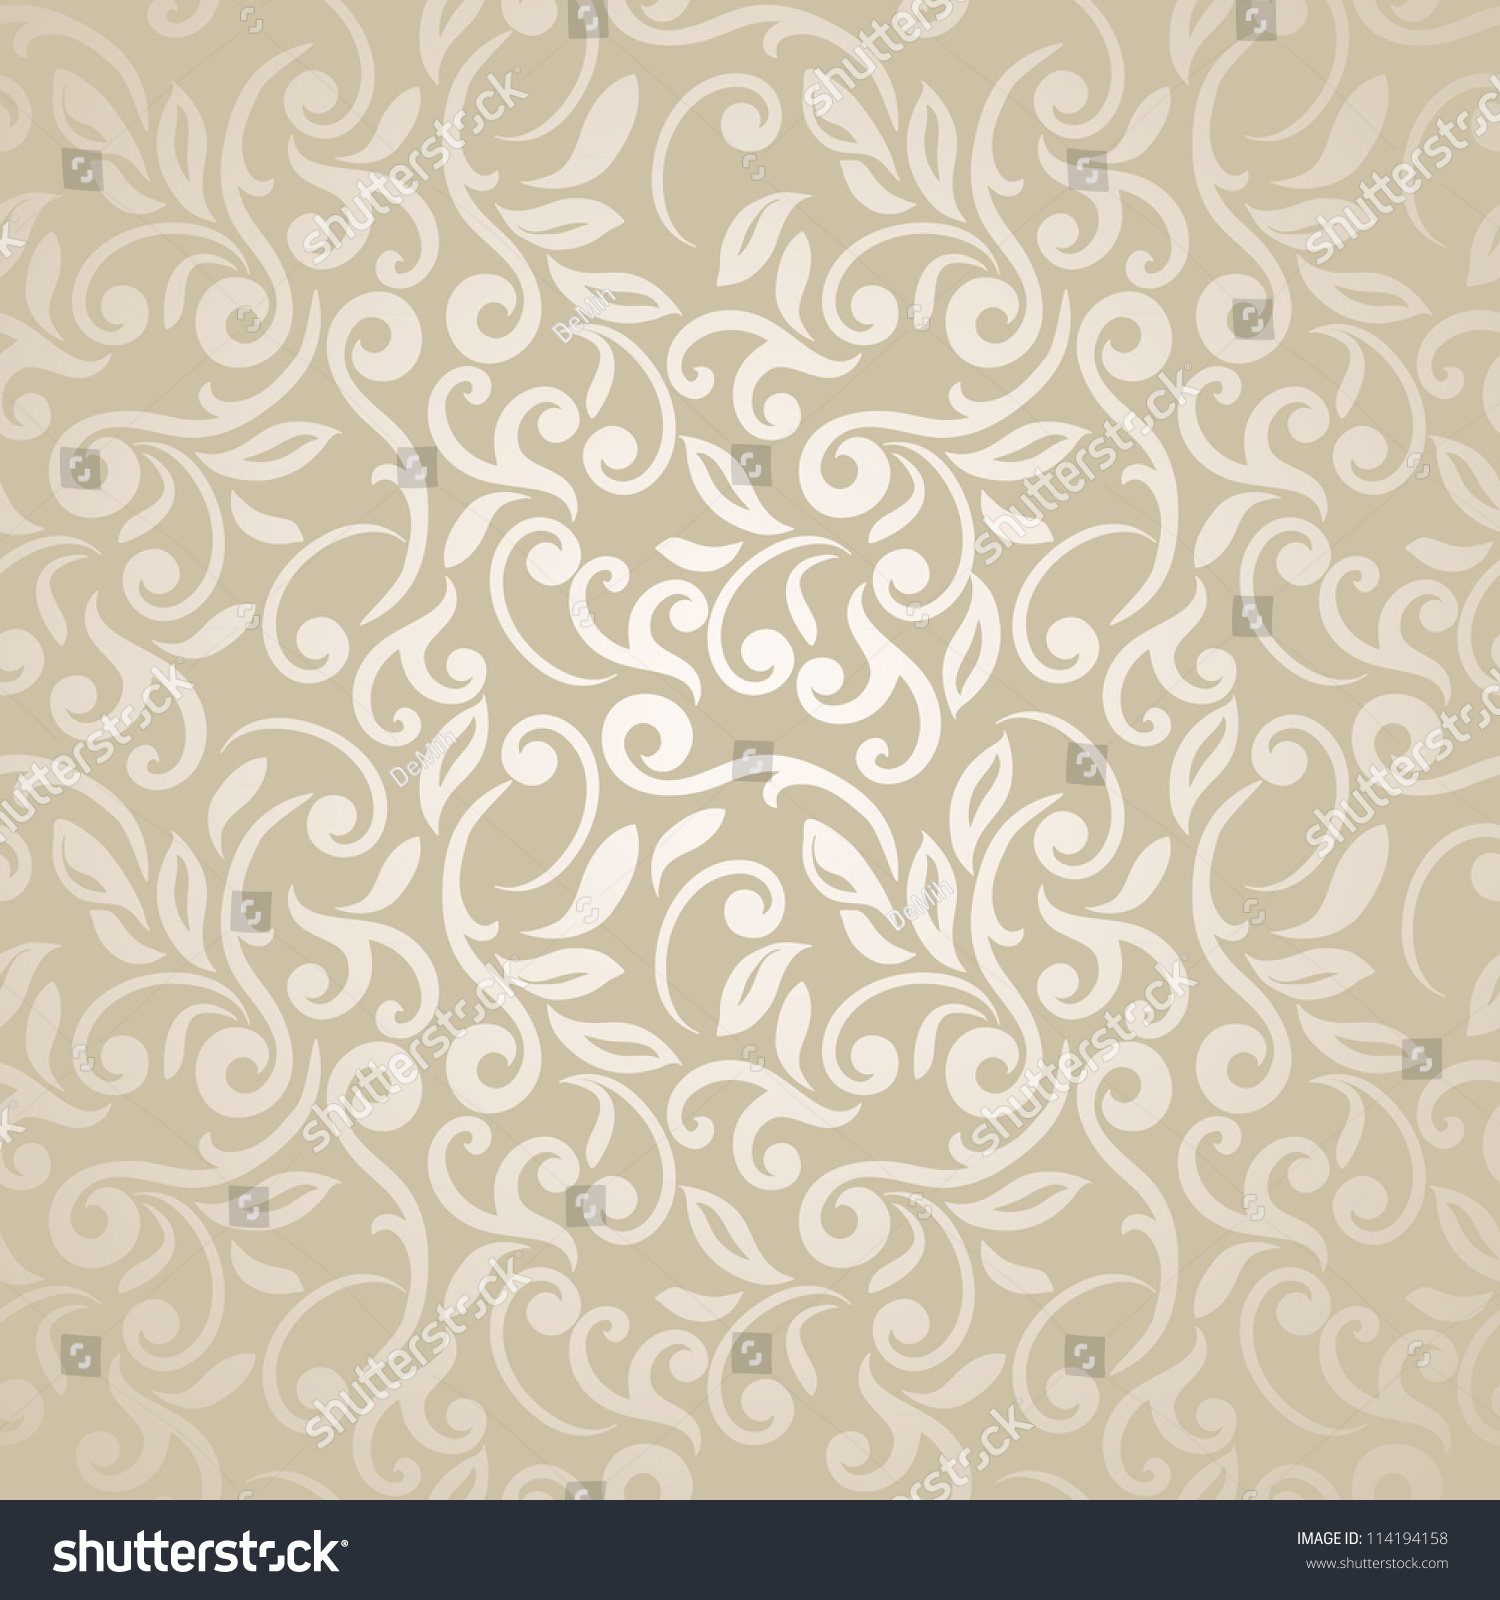 Floral Seamless Abstract Elegant Wallpaper Stock Photo